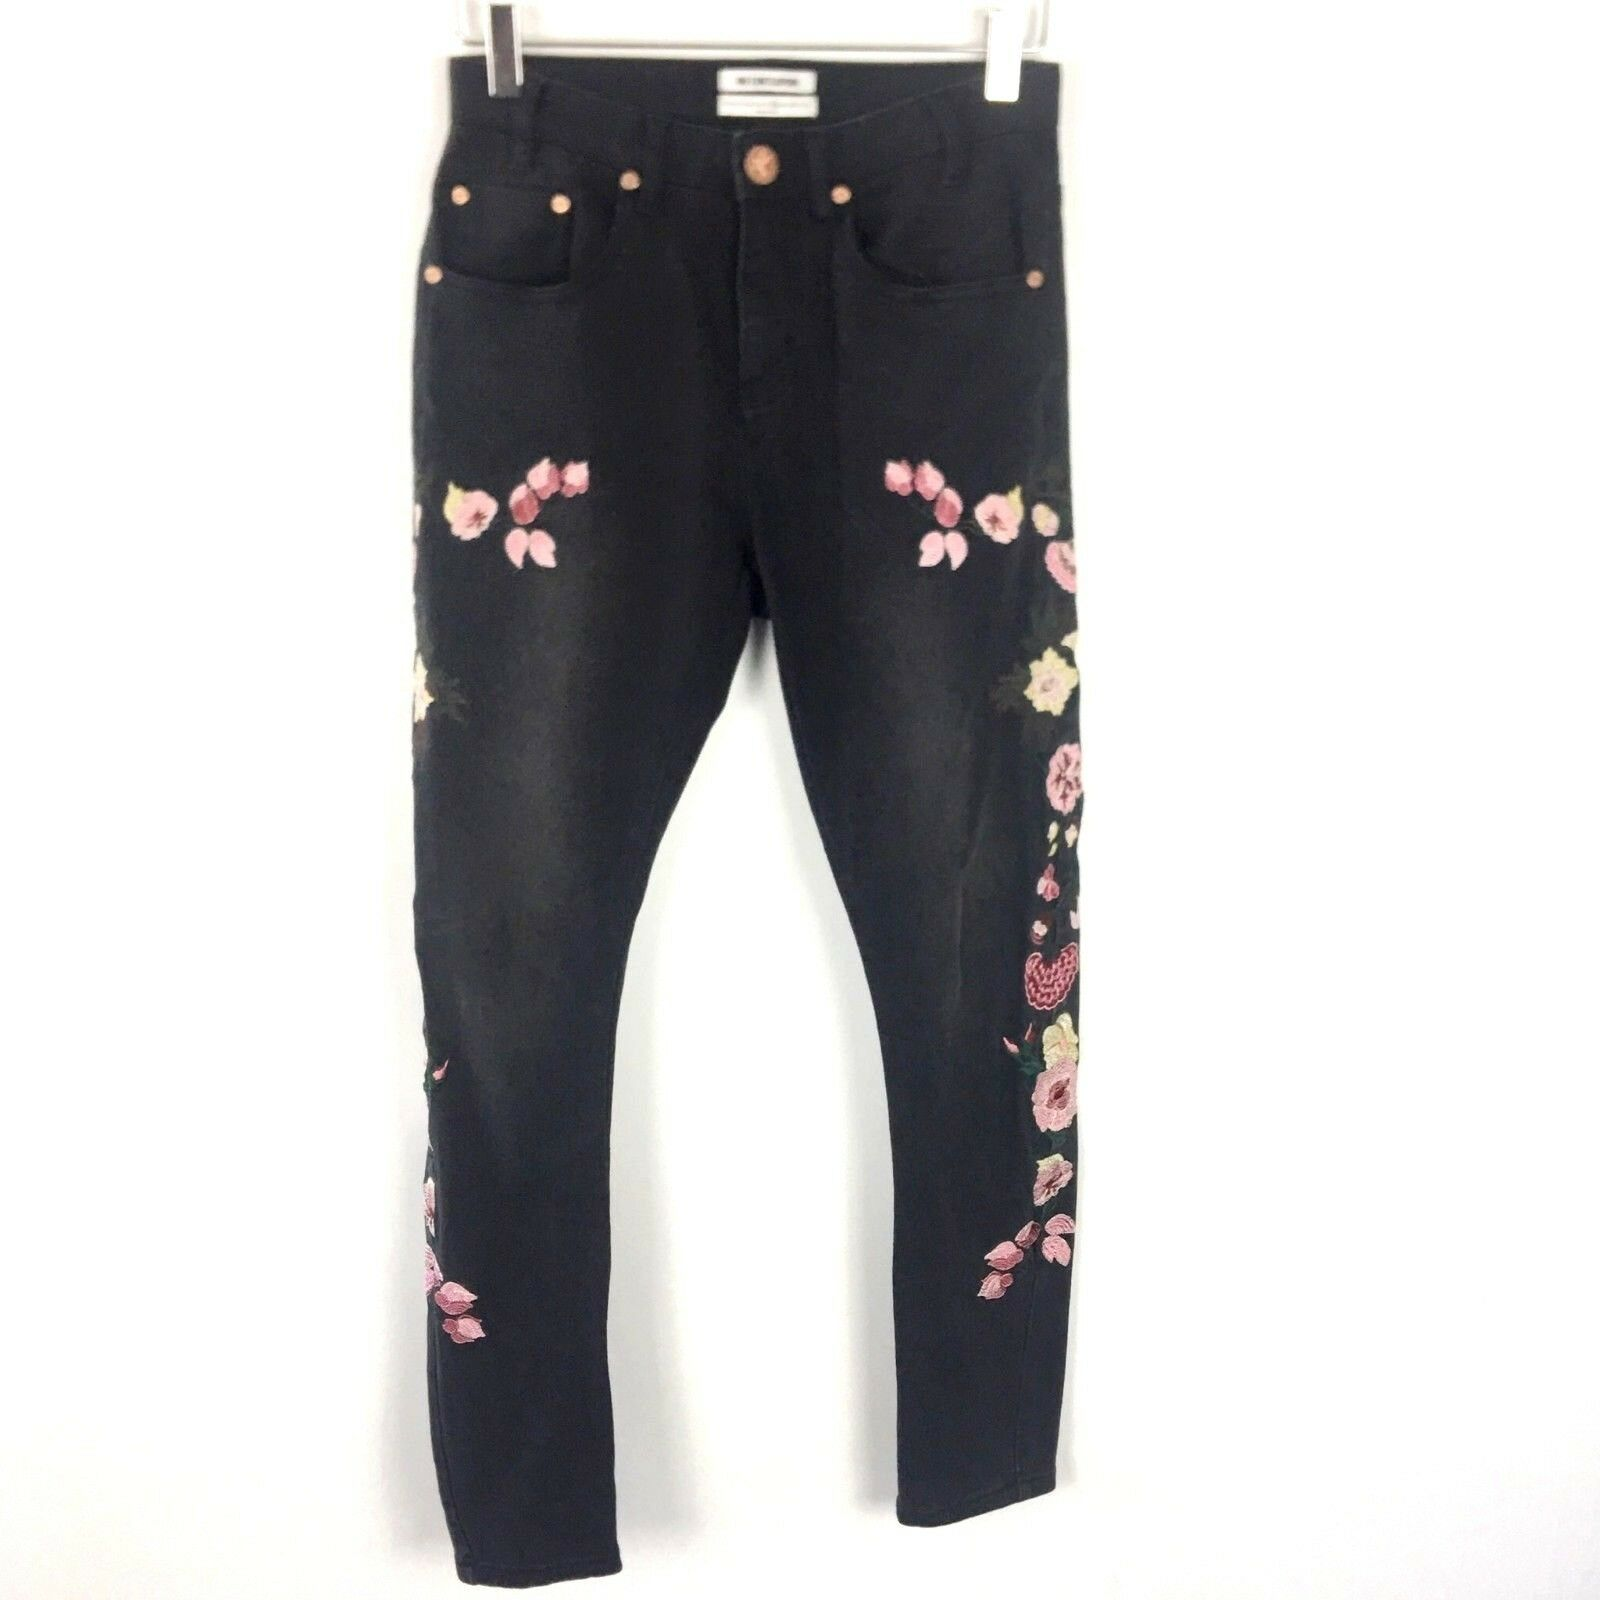 One Teaspoon   Women's Size 28 Jeans Birds of Paradise Embroidered Floral Skinny